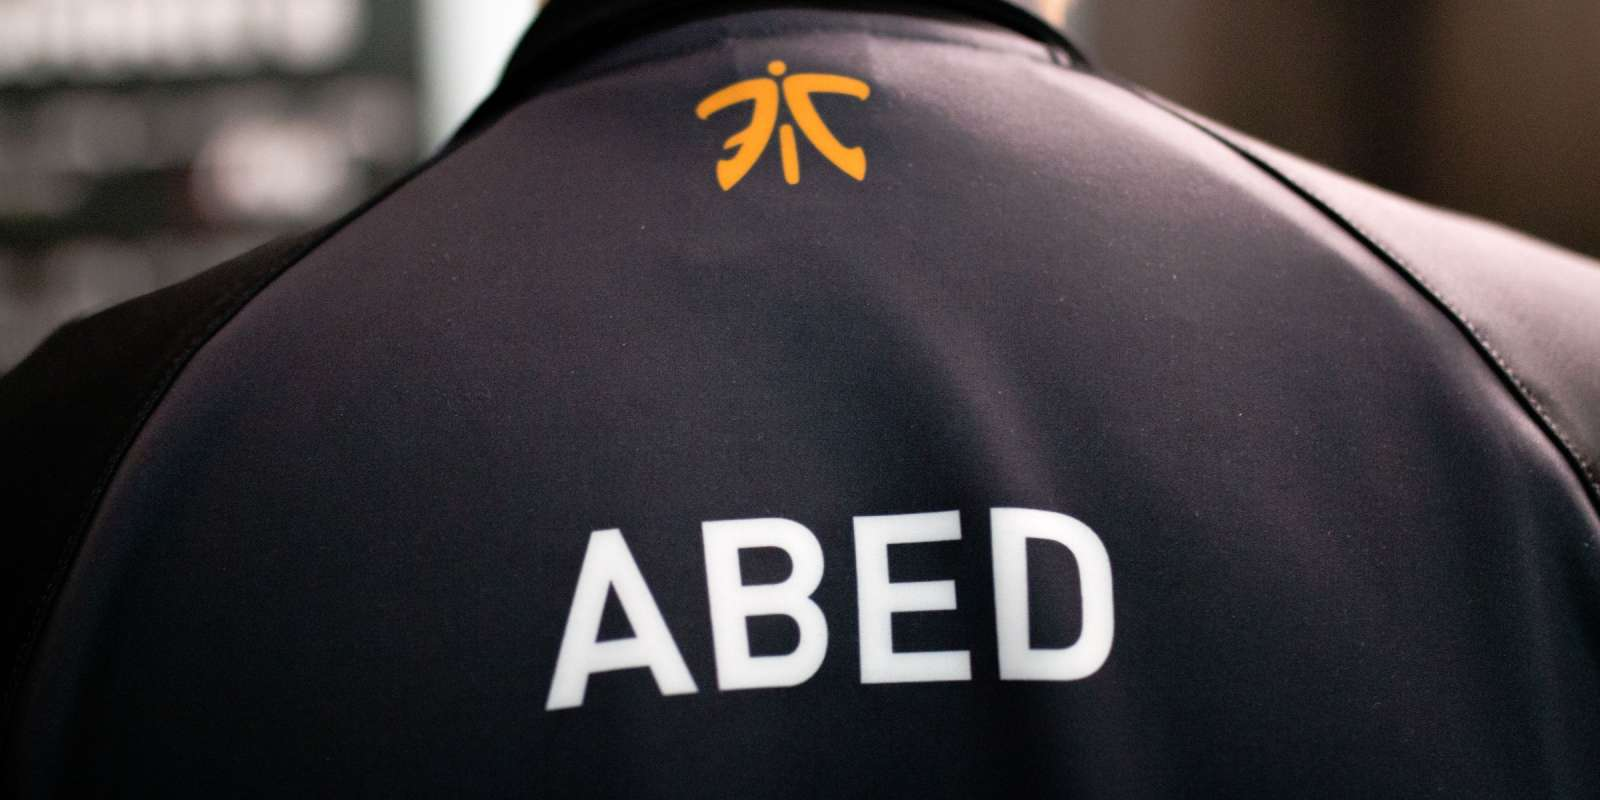 Photos of the Fnatic Dota 2 team playing in Dota Summit 8 at the Beyond The Summit house in Walnut, CA